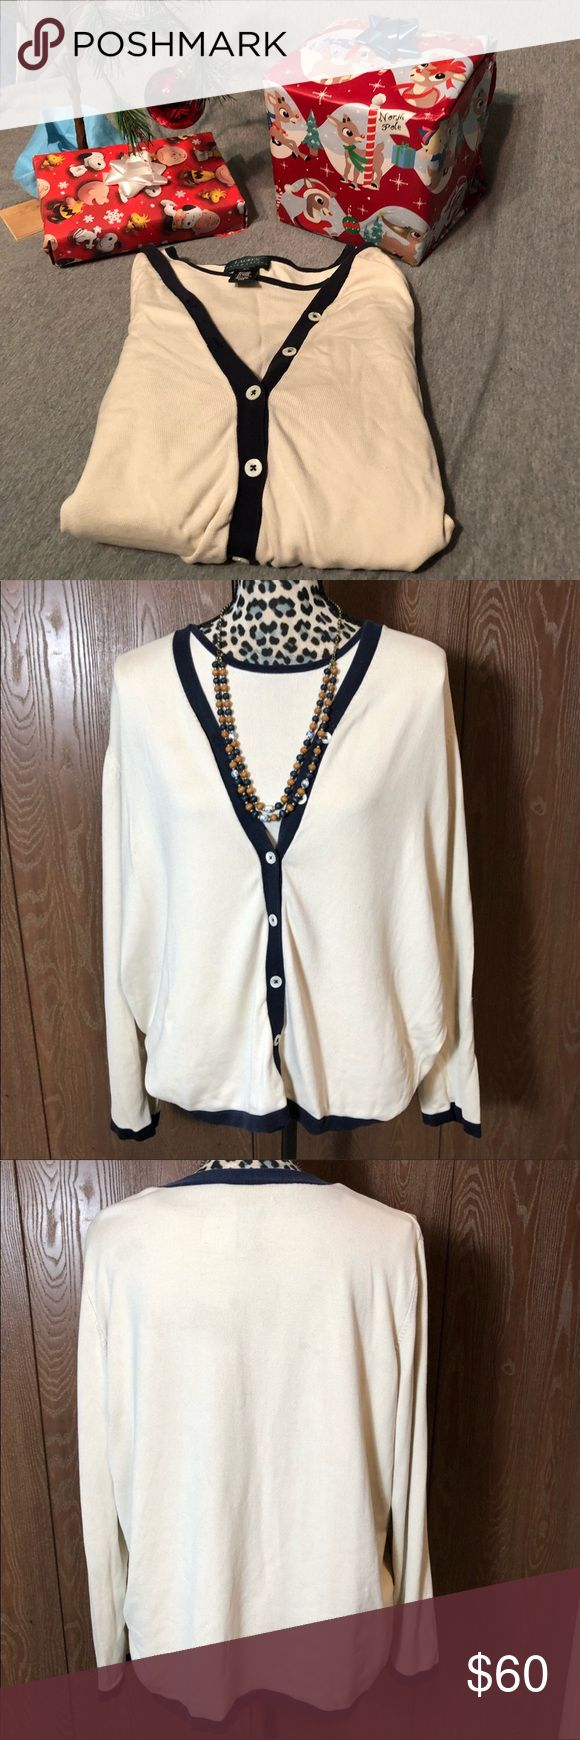 ☃️Lauren Ralph Lauren Sweater Set Gently used 2X sweater set from Lauren Ralph Lauren. Some slight spots that aren't noticed unless under bright lights. Bust of the tank top is 22.5 inches and 23.5 inches long. The Cardigan is 25.5 inches in the bust and 25 inches long.   💜All sales are going towards college tuition for the spring semester! I am majoring in Elementary Education and I love it! Thanks so much for helping me reach my goal of becoming a Kindergarten teacher!💙 Lauren Ralph…